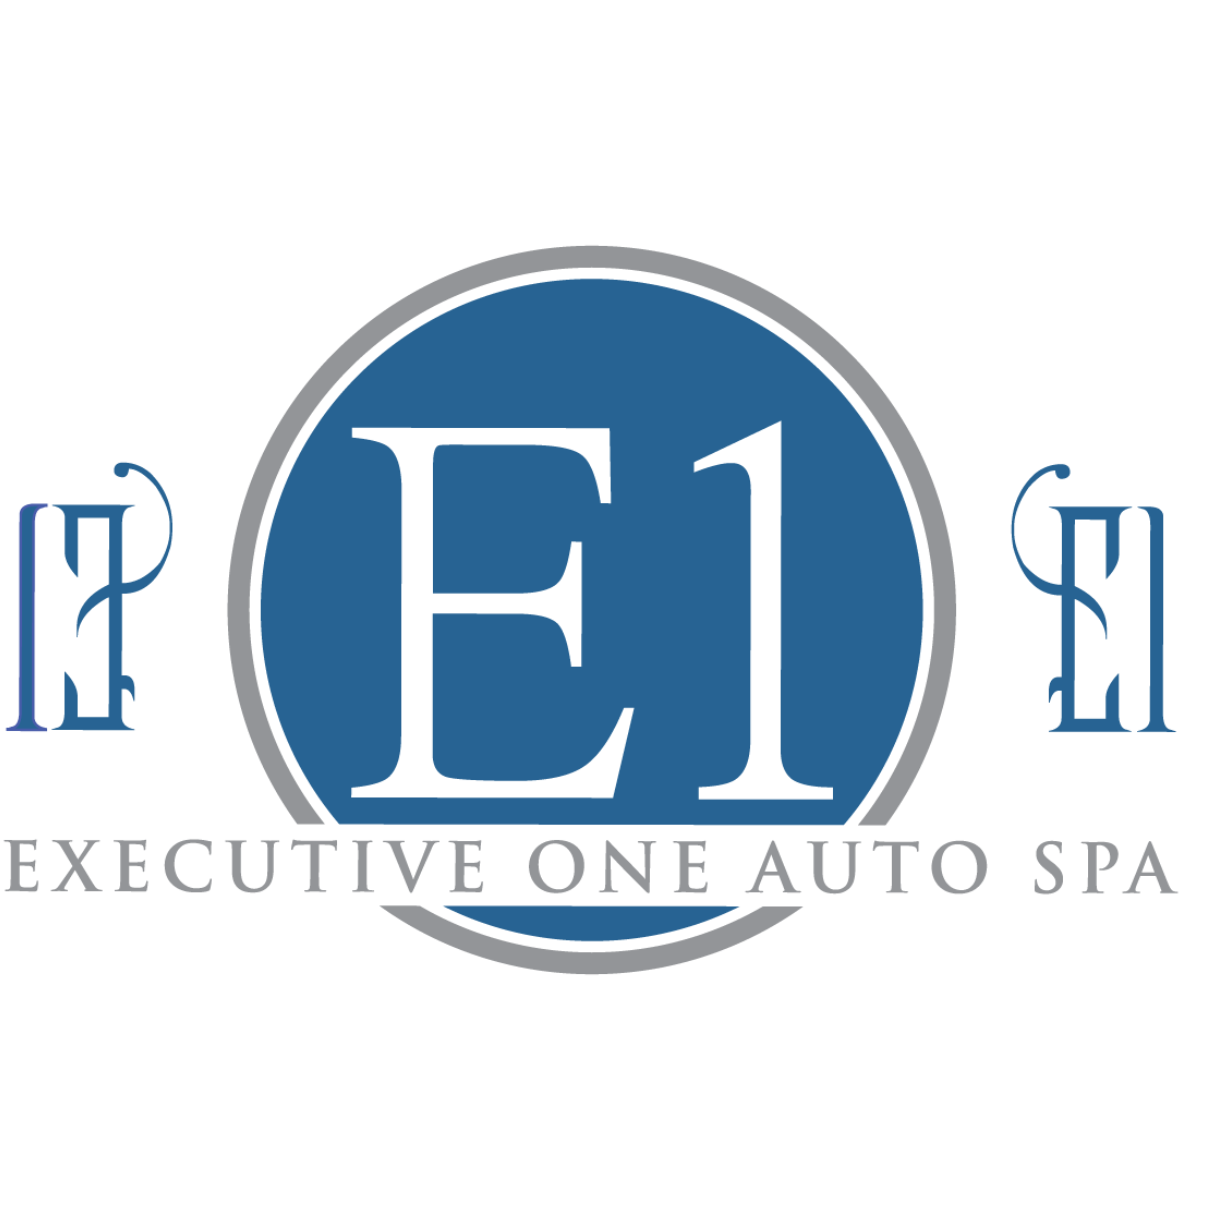 Executive One Auto Spa & Oil Lube